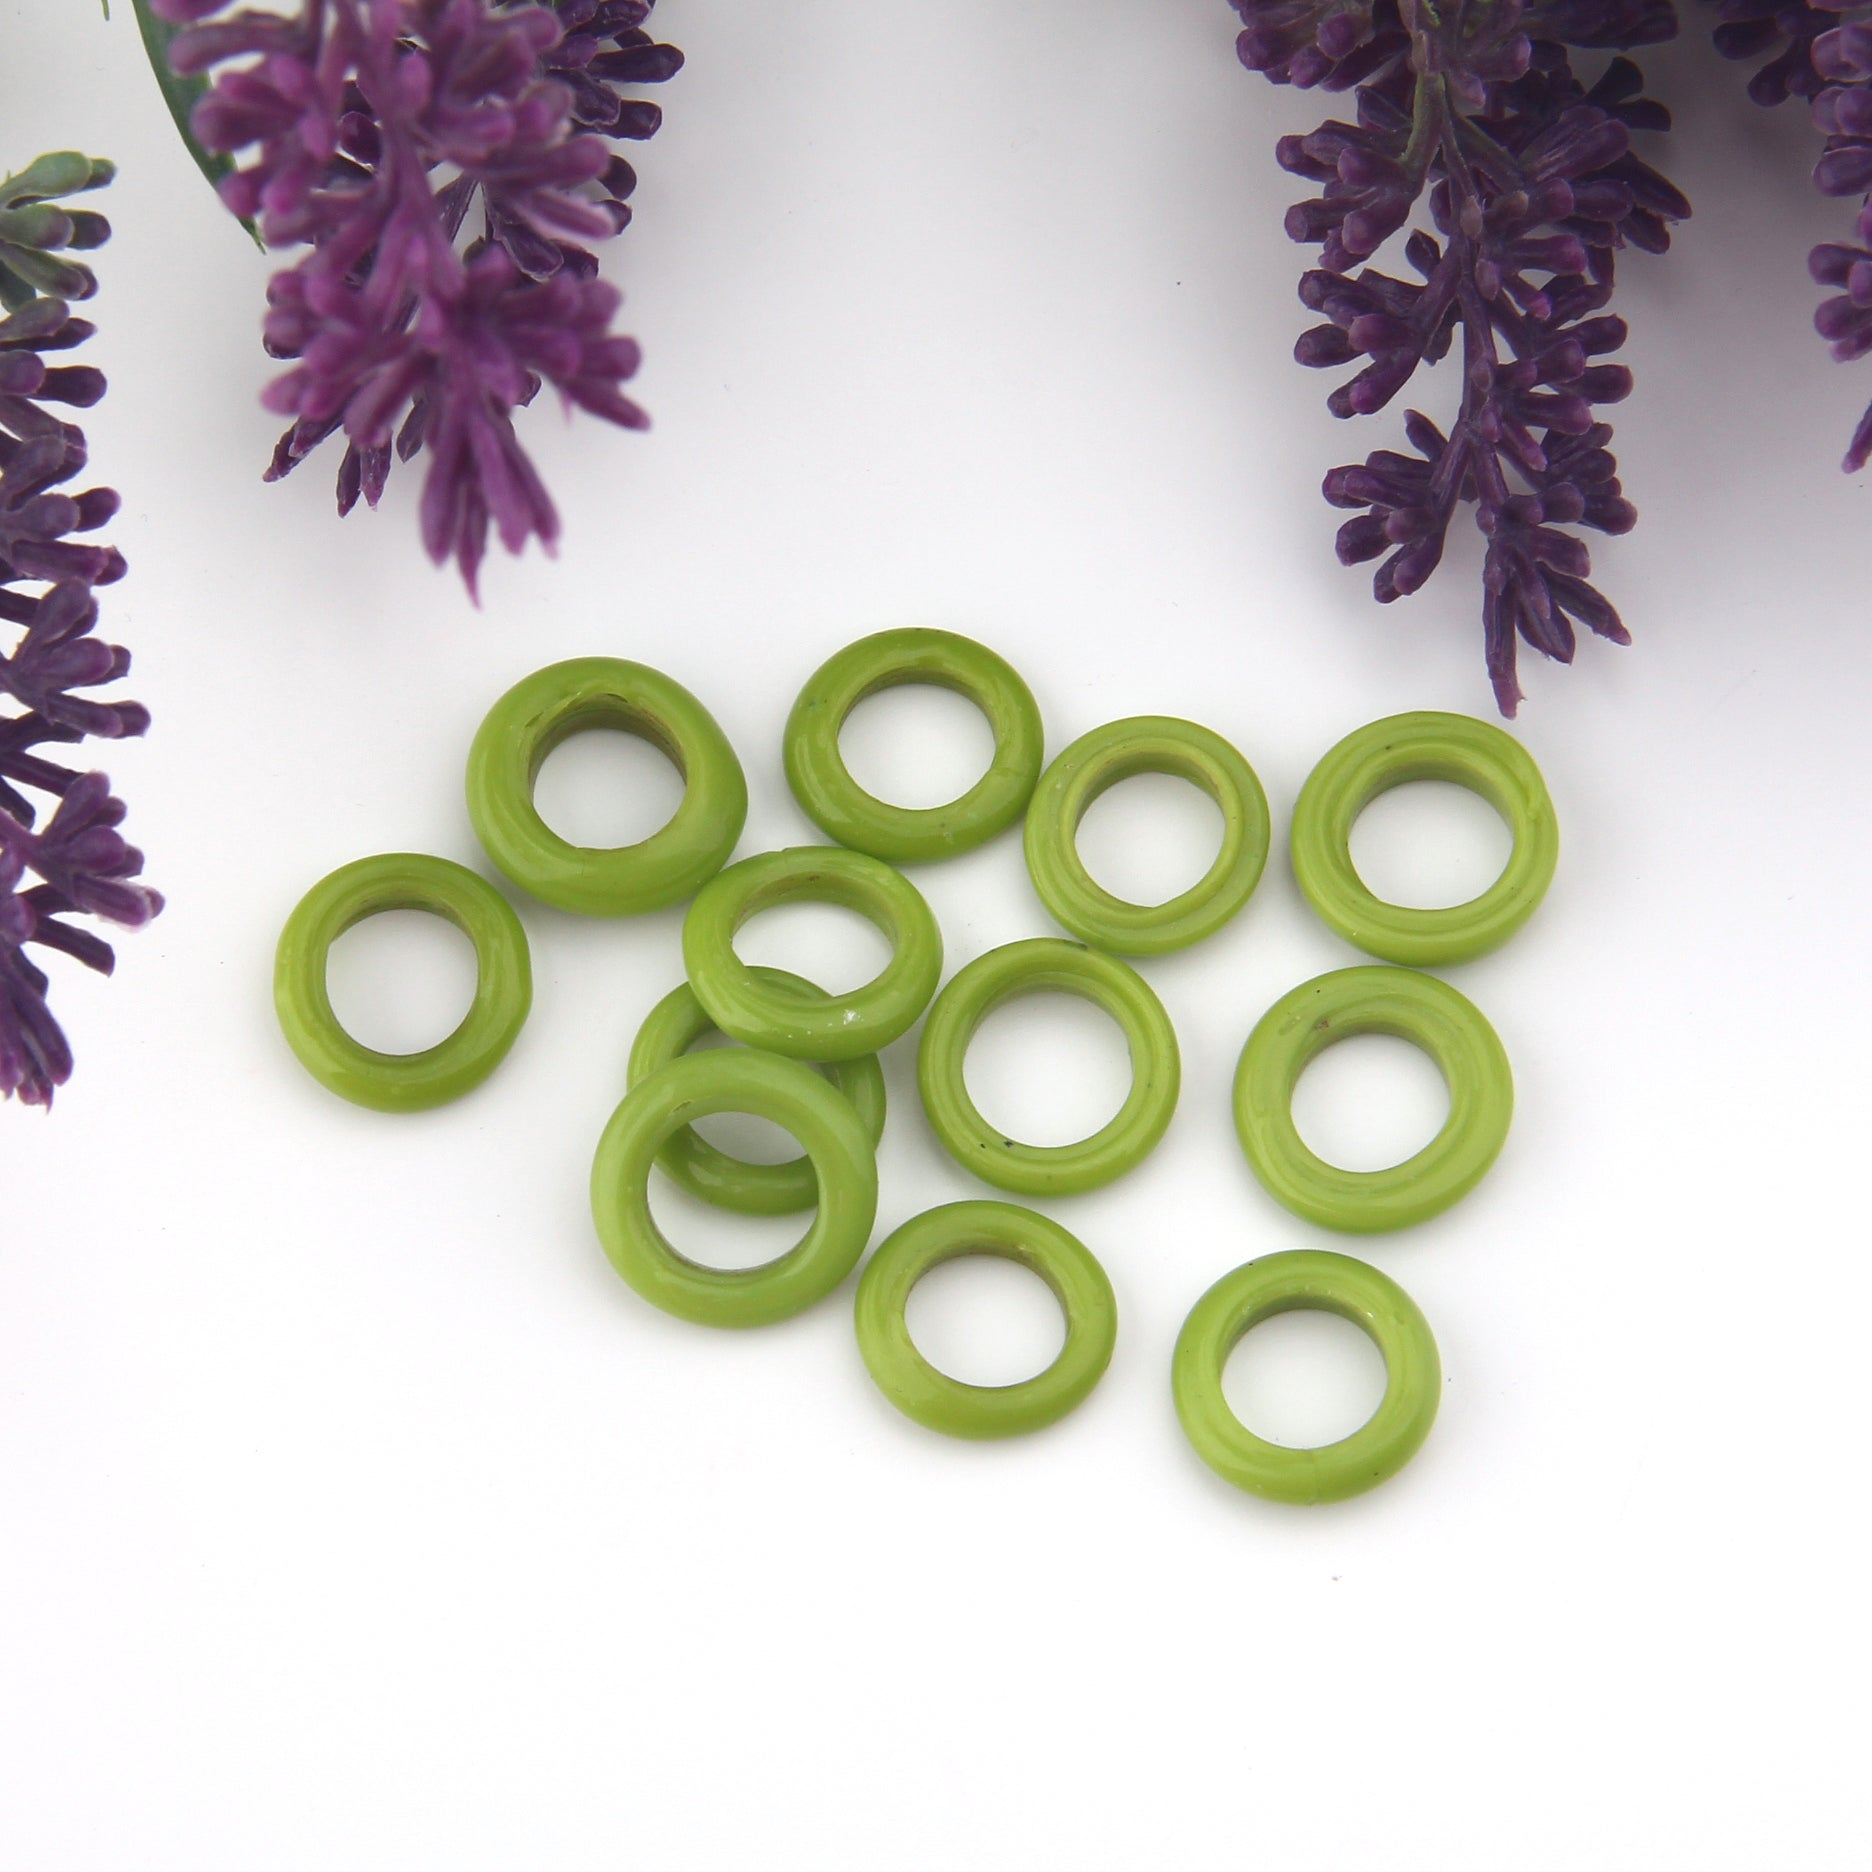 Olive Green, Lampwork Ring Beads, Handmade Glass Beads, Glass Donut Beads, Glass Circle Beads, 10 pieces // BD-125